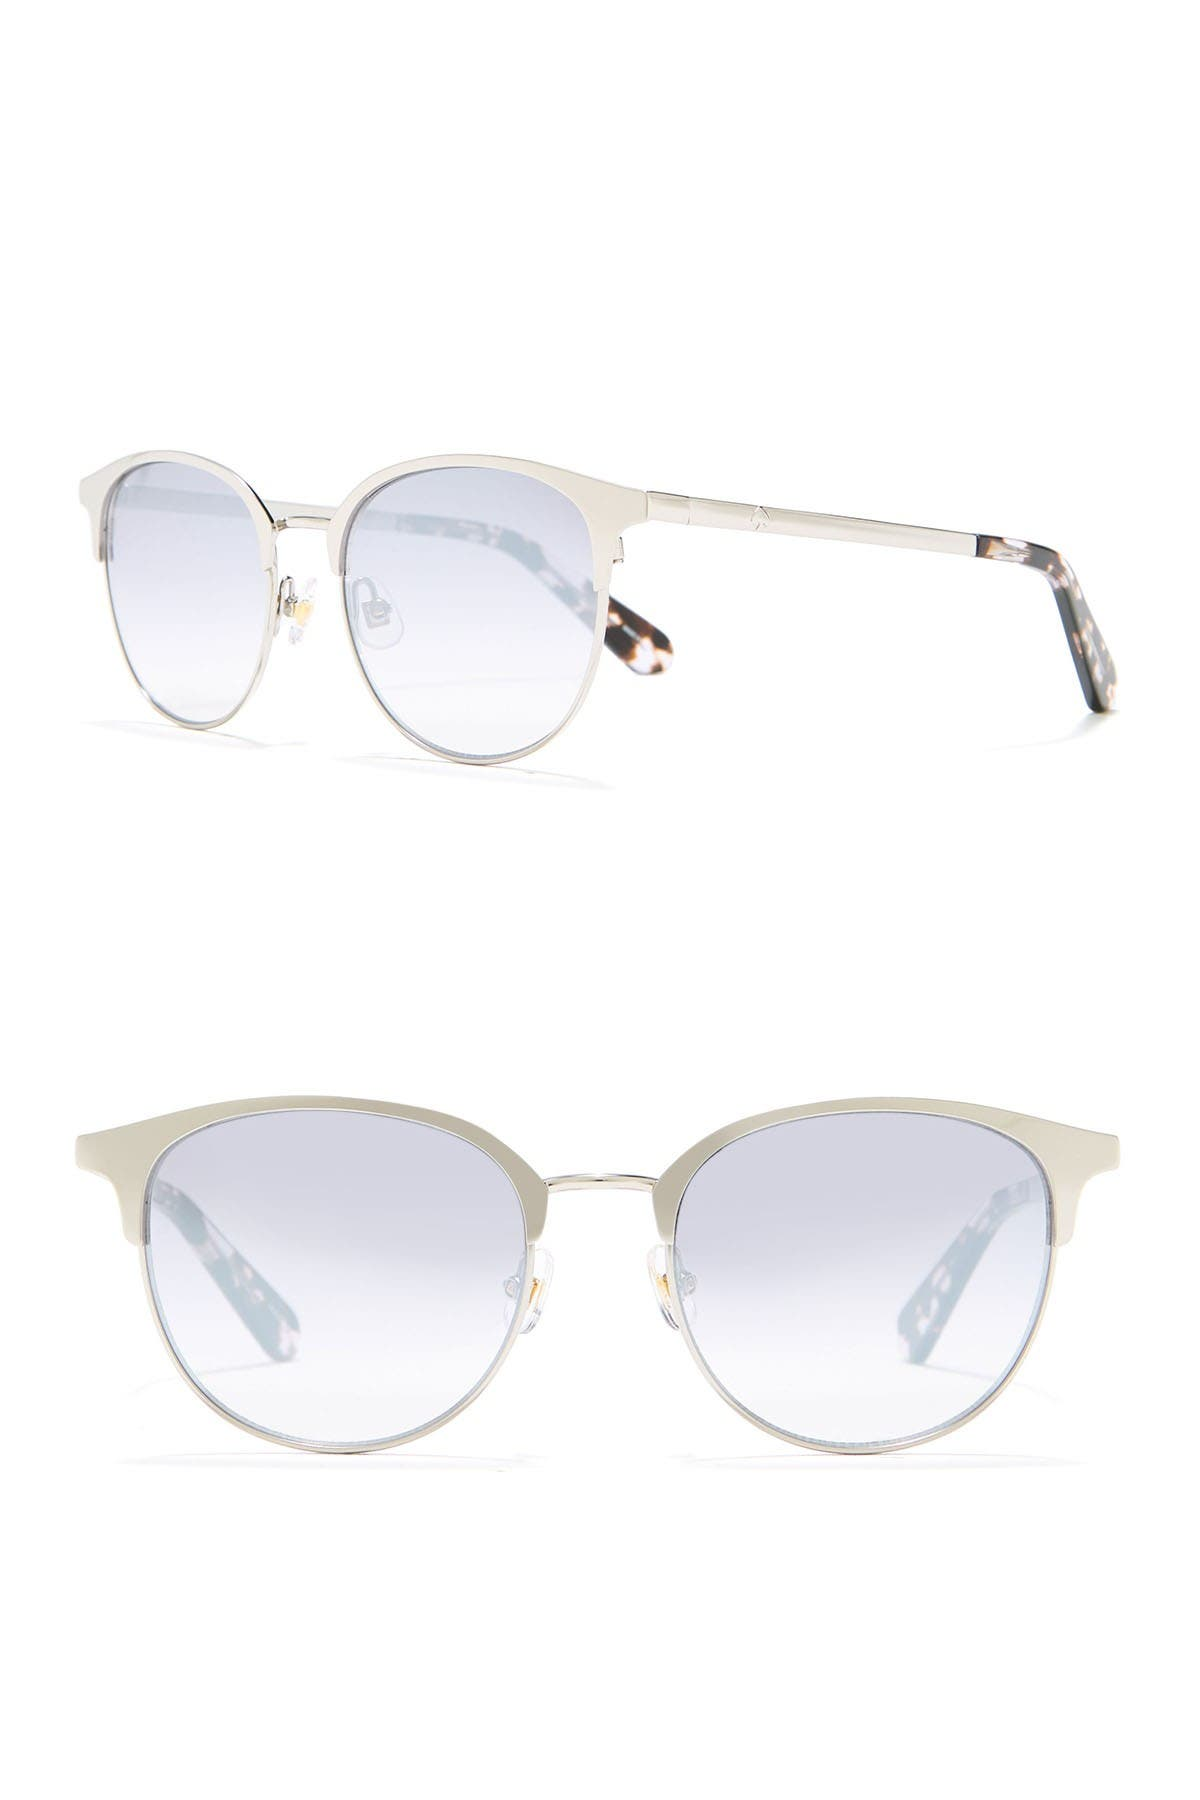 Image of kate spade new york joelynns 50mm clubmaster sunglasses